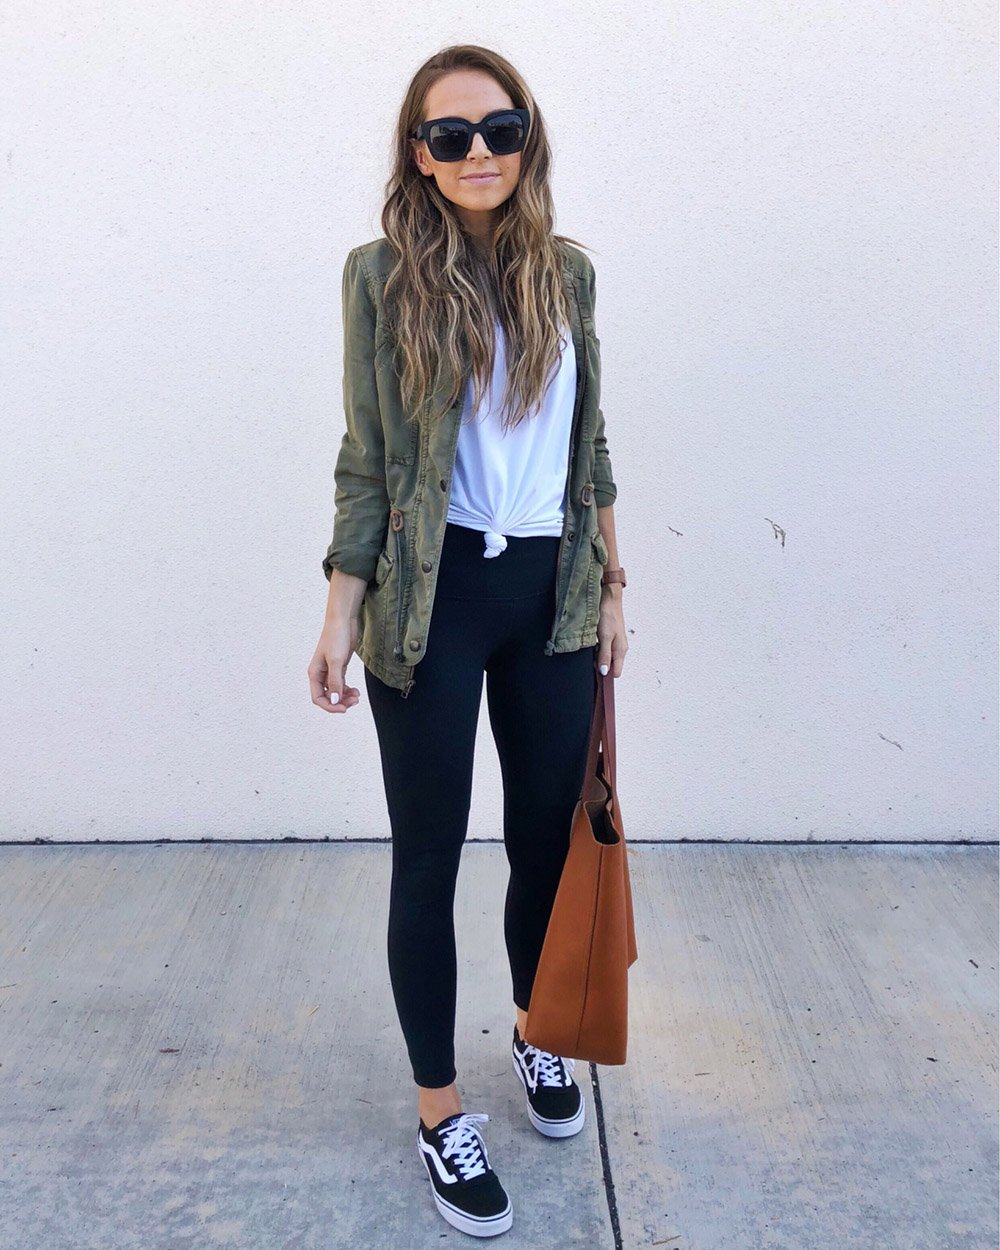 olive jacket and leggings